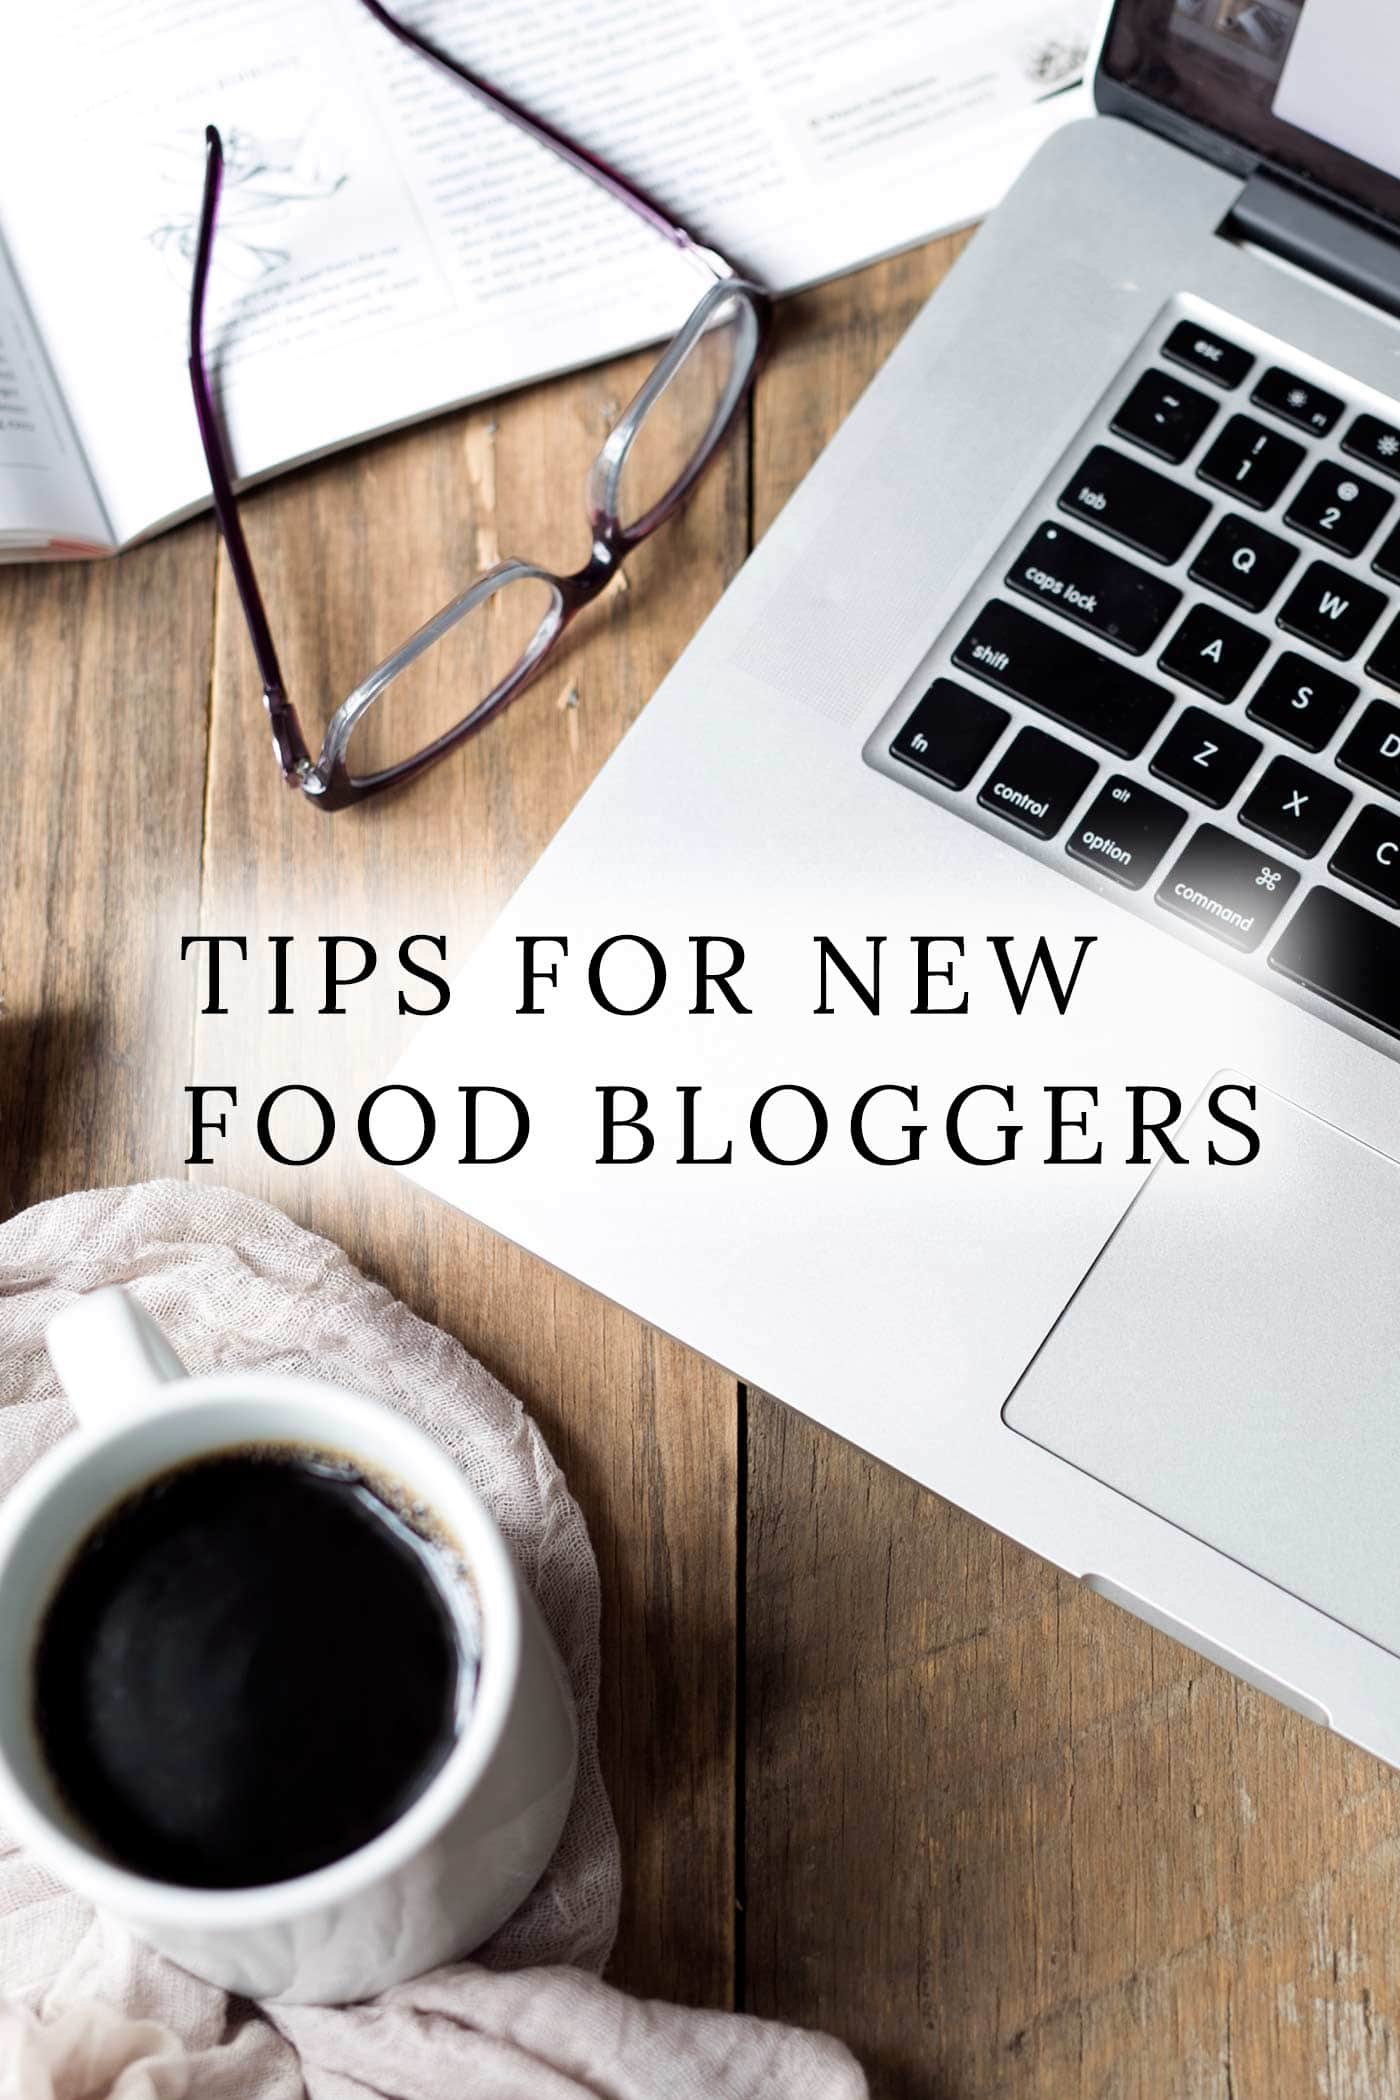 A laptop, coffee, and glasses with text overlay: Food Blogging Tips.